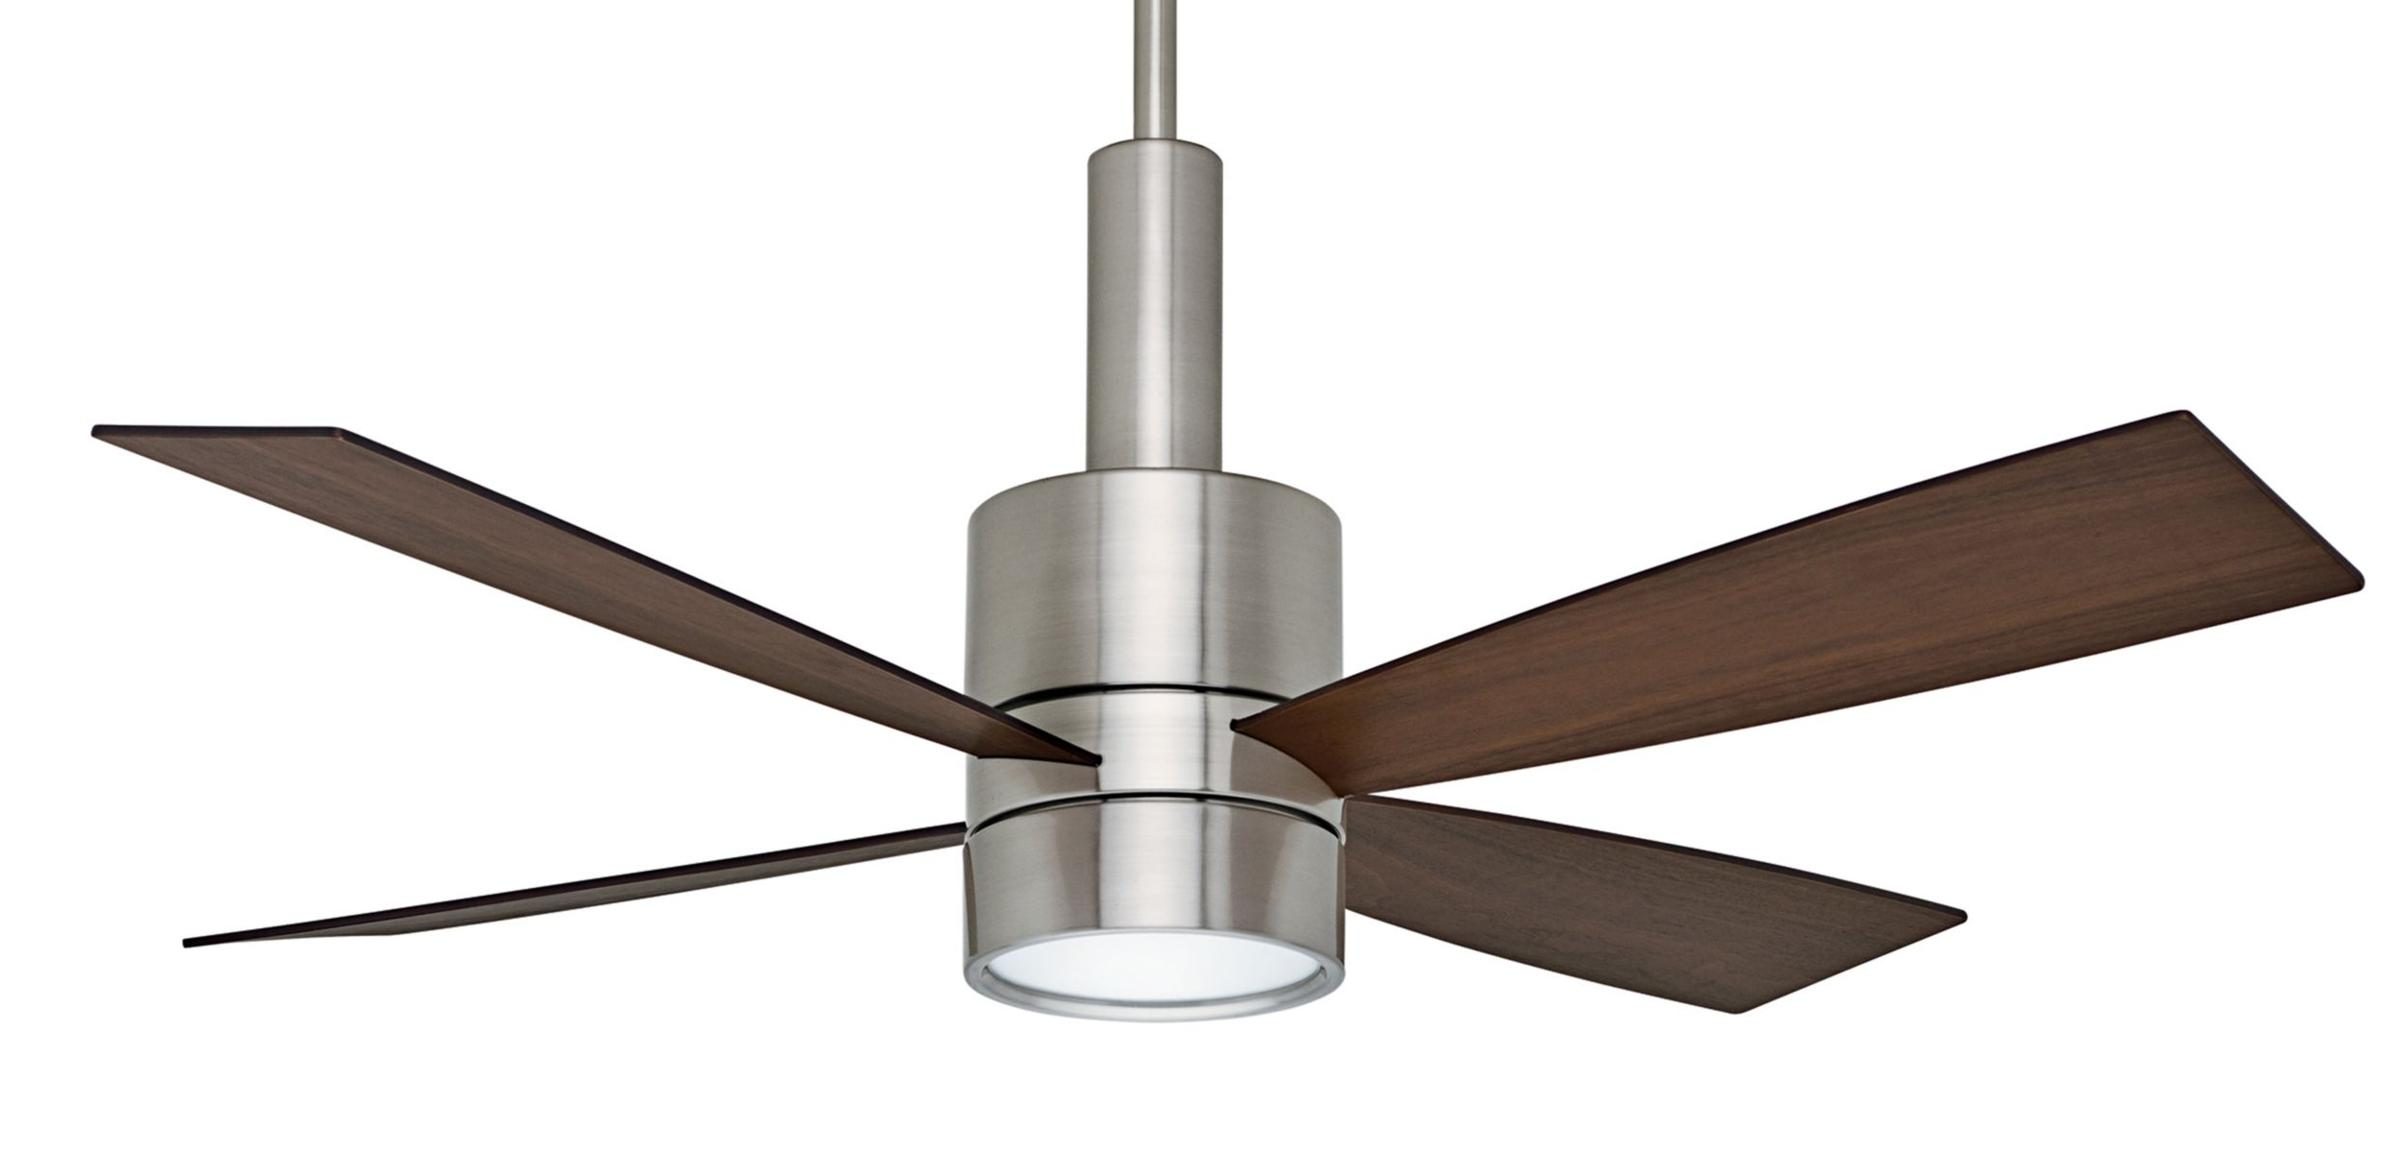 Ceiling Fans With Lights : Large residential ceiling fans major role in enhancing